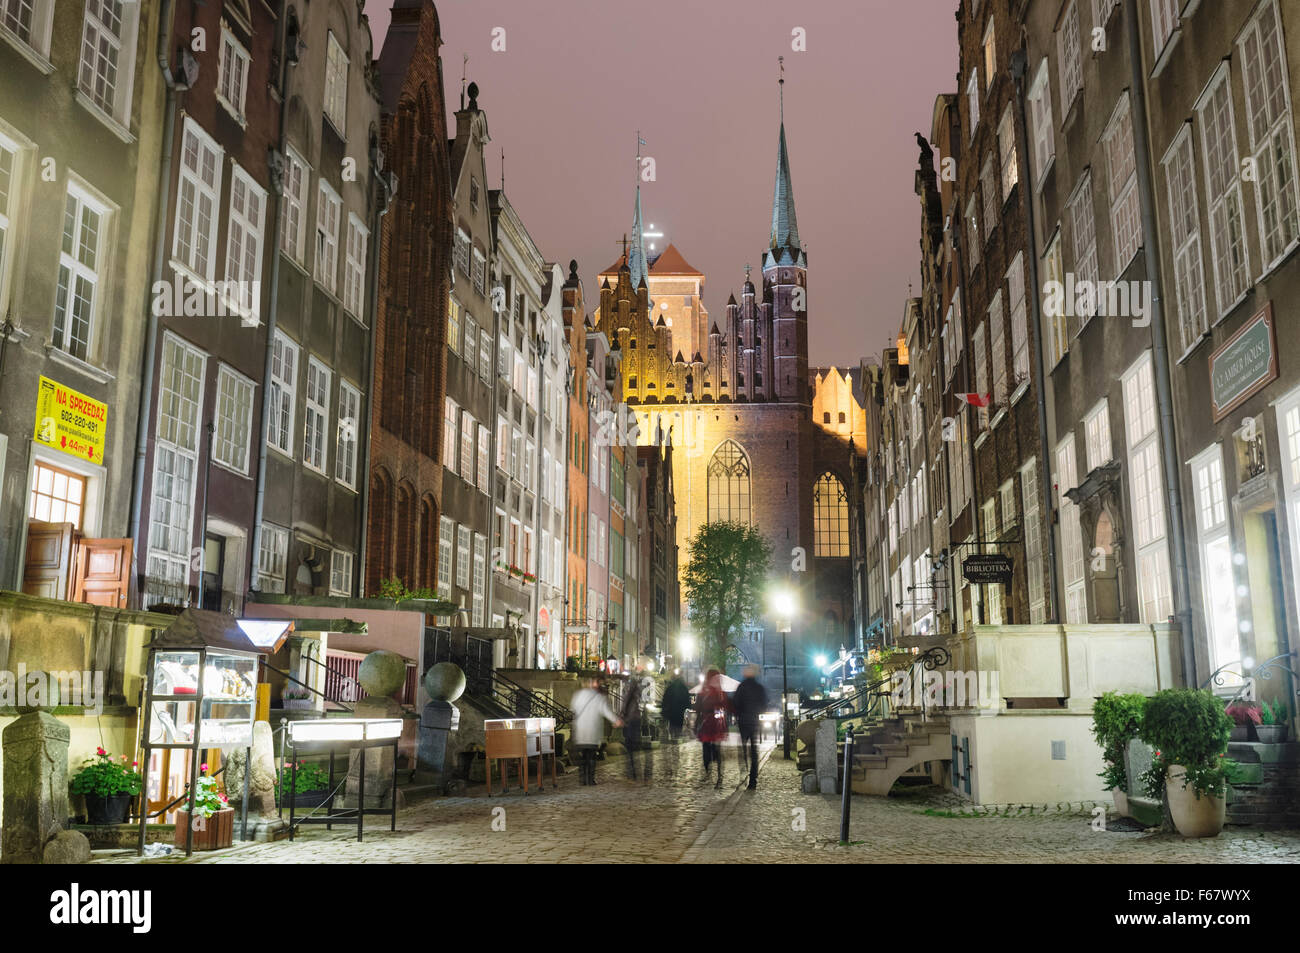 Mariacka Street (St. Mary's basilica in background) by night. Mariacka is the main shopping street for amber - Stock Image